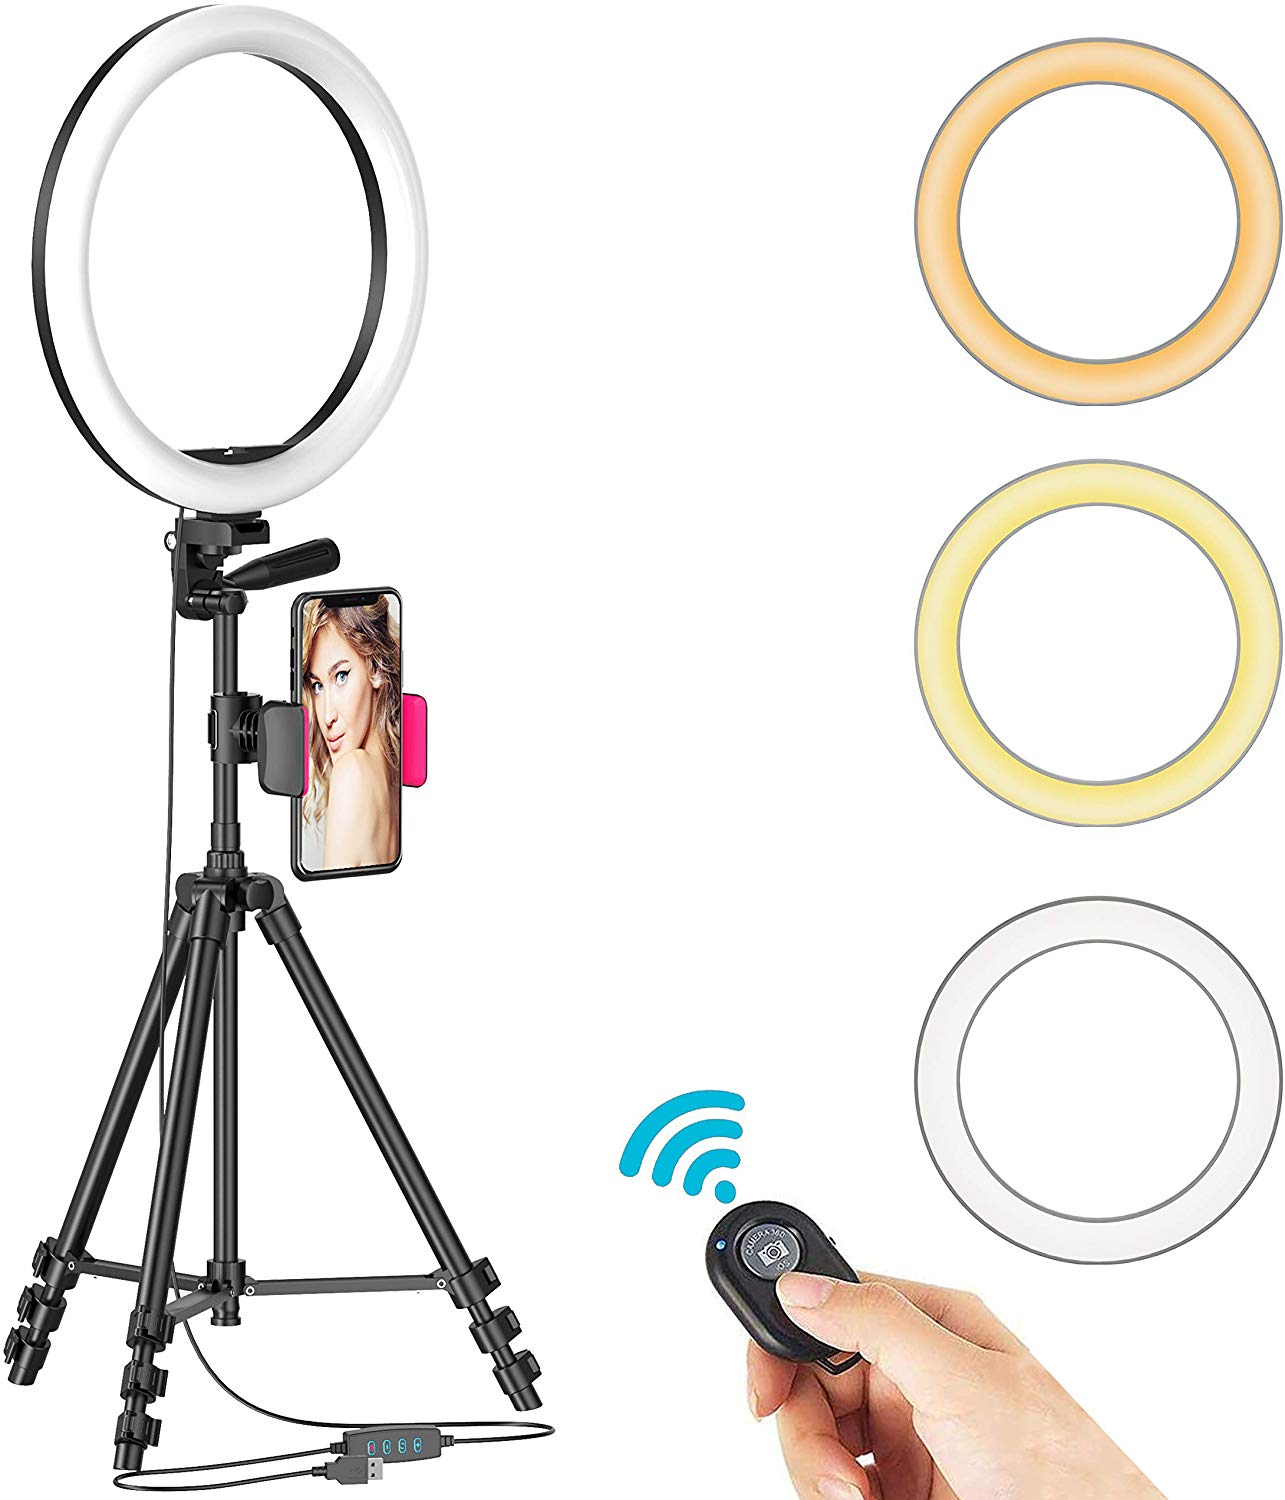 "12"" Selfie Ring Light"